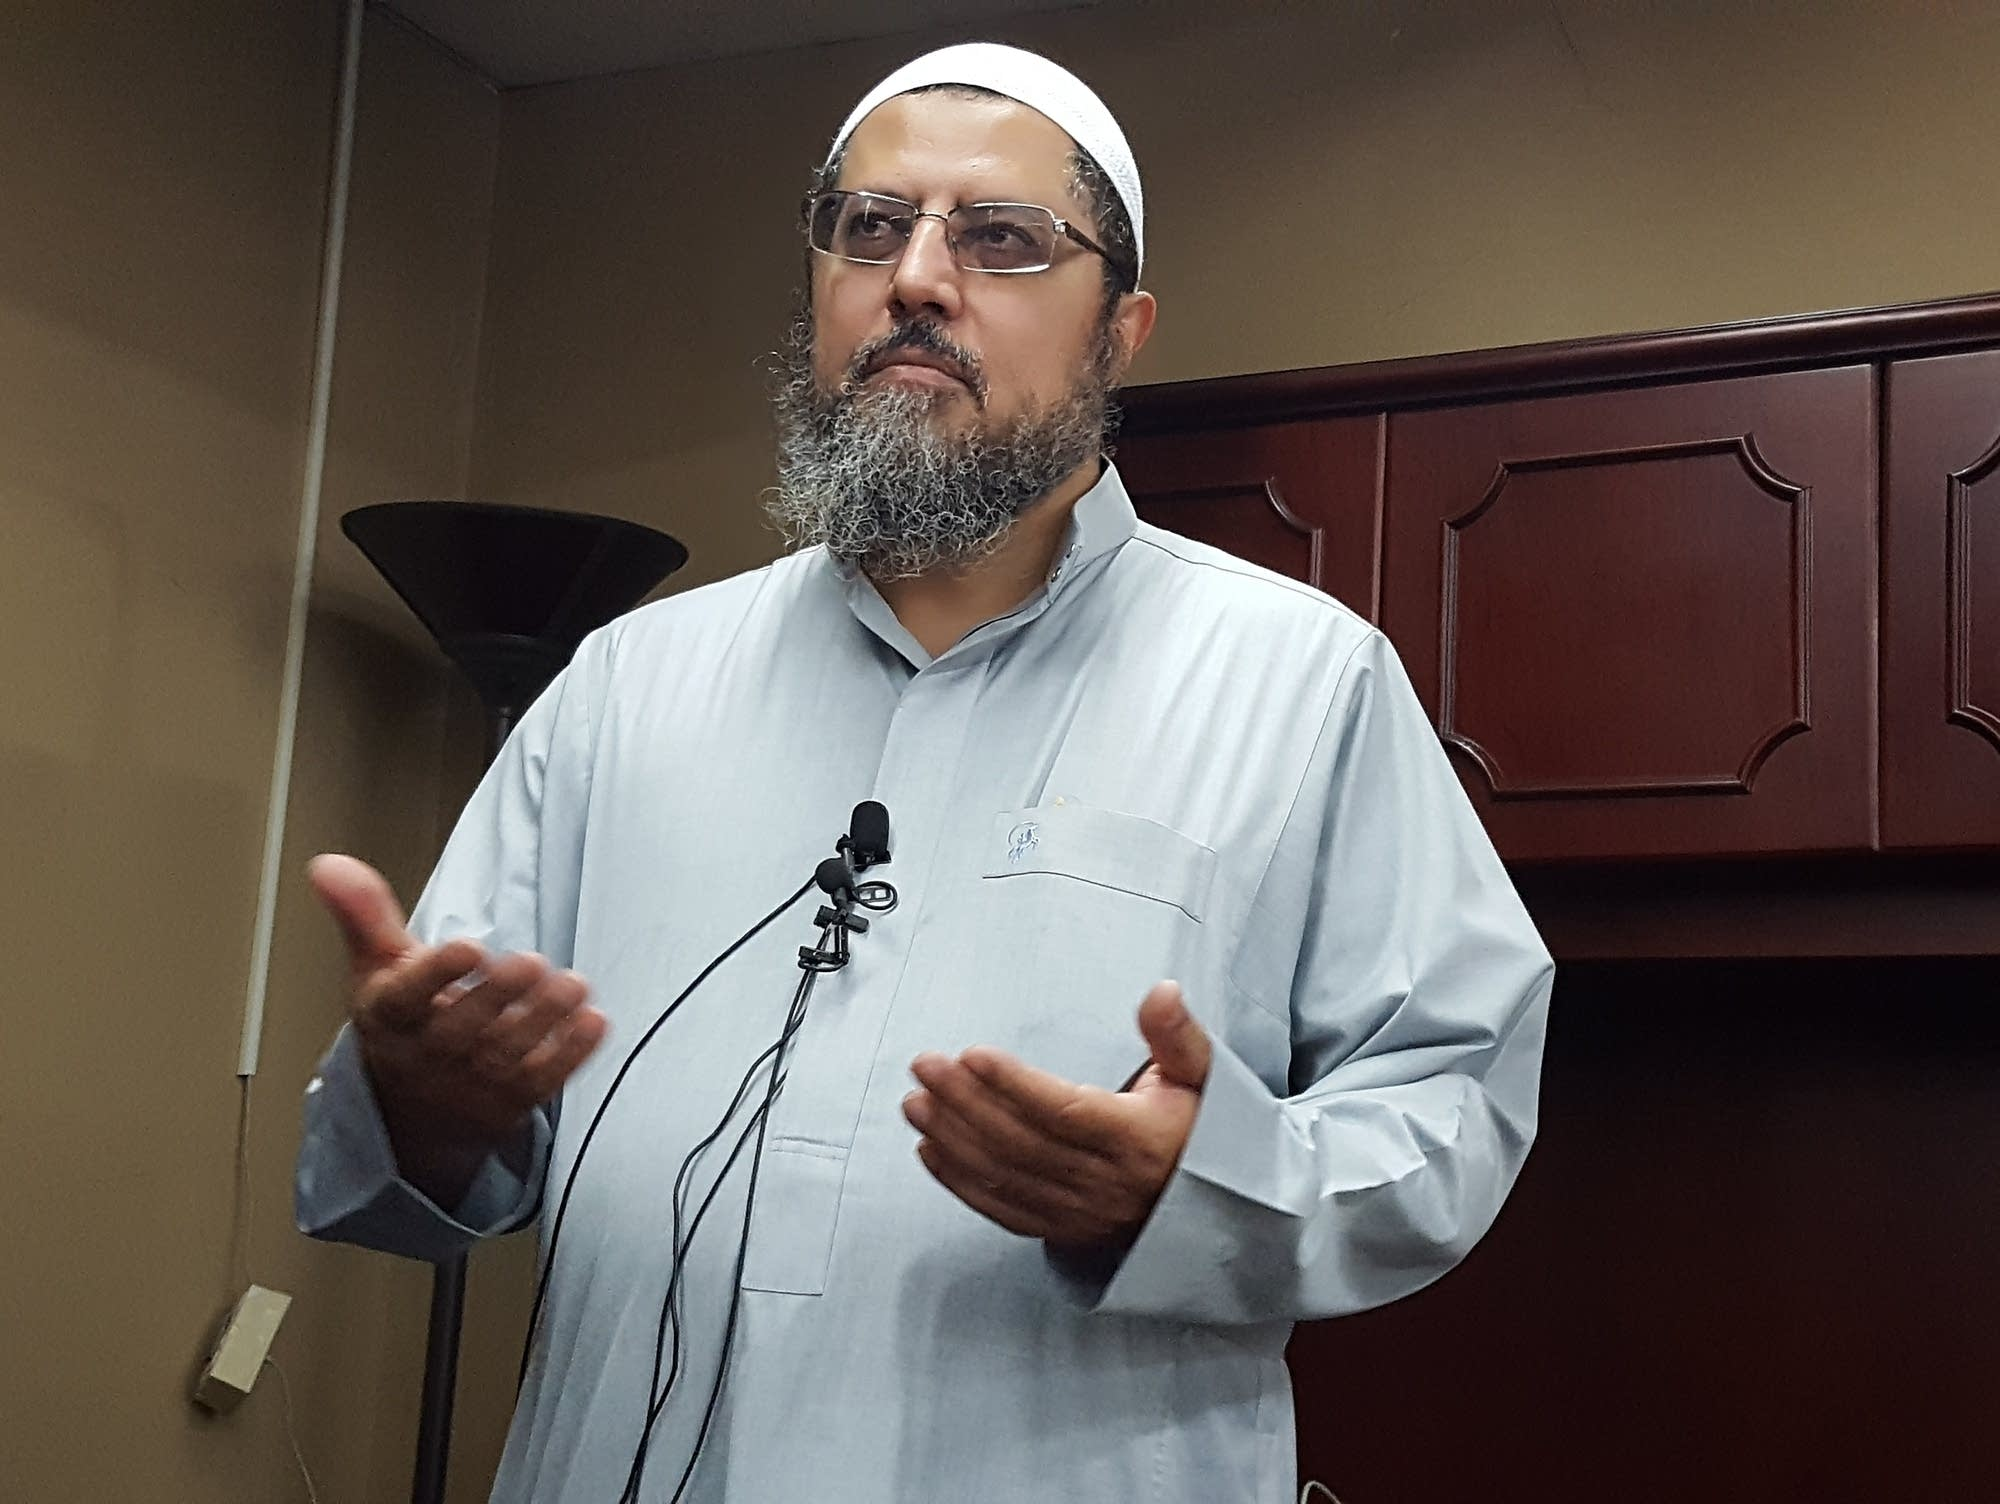 Imam Waleed Meneese at Dar Al-Farooq Islamic Center.